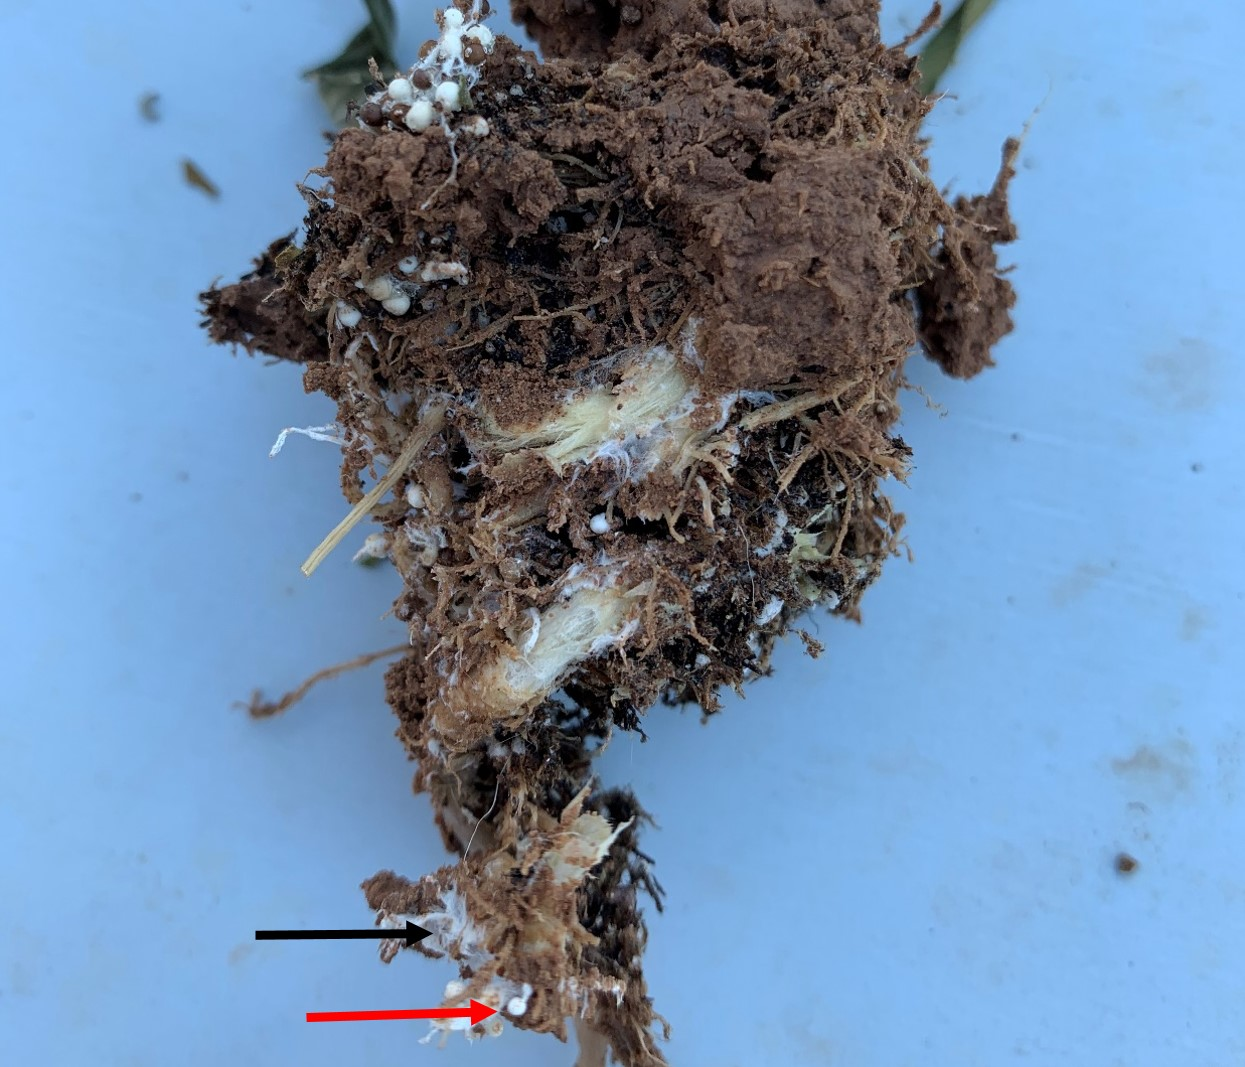 Roots of infected industrial hemp plant showing white fungal growth.